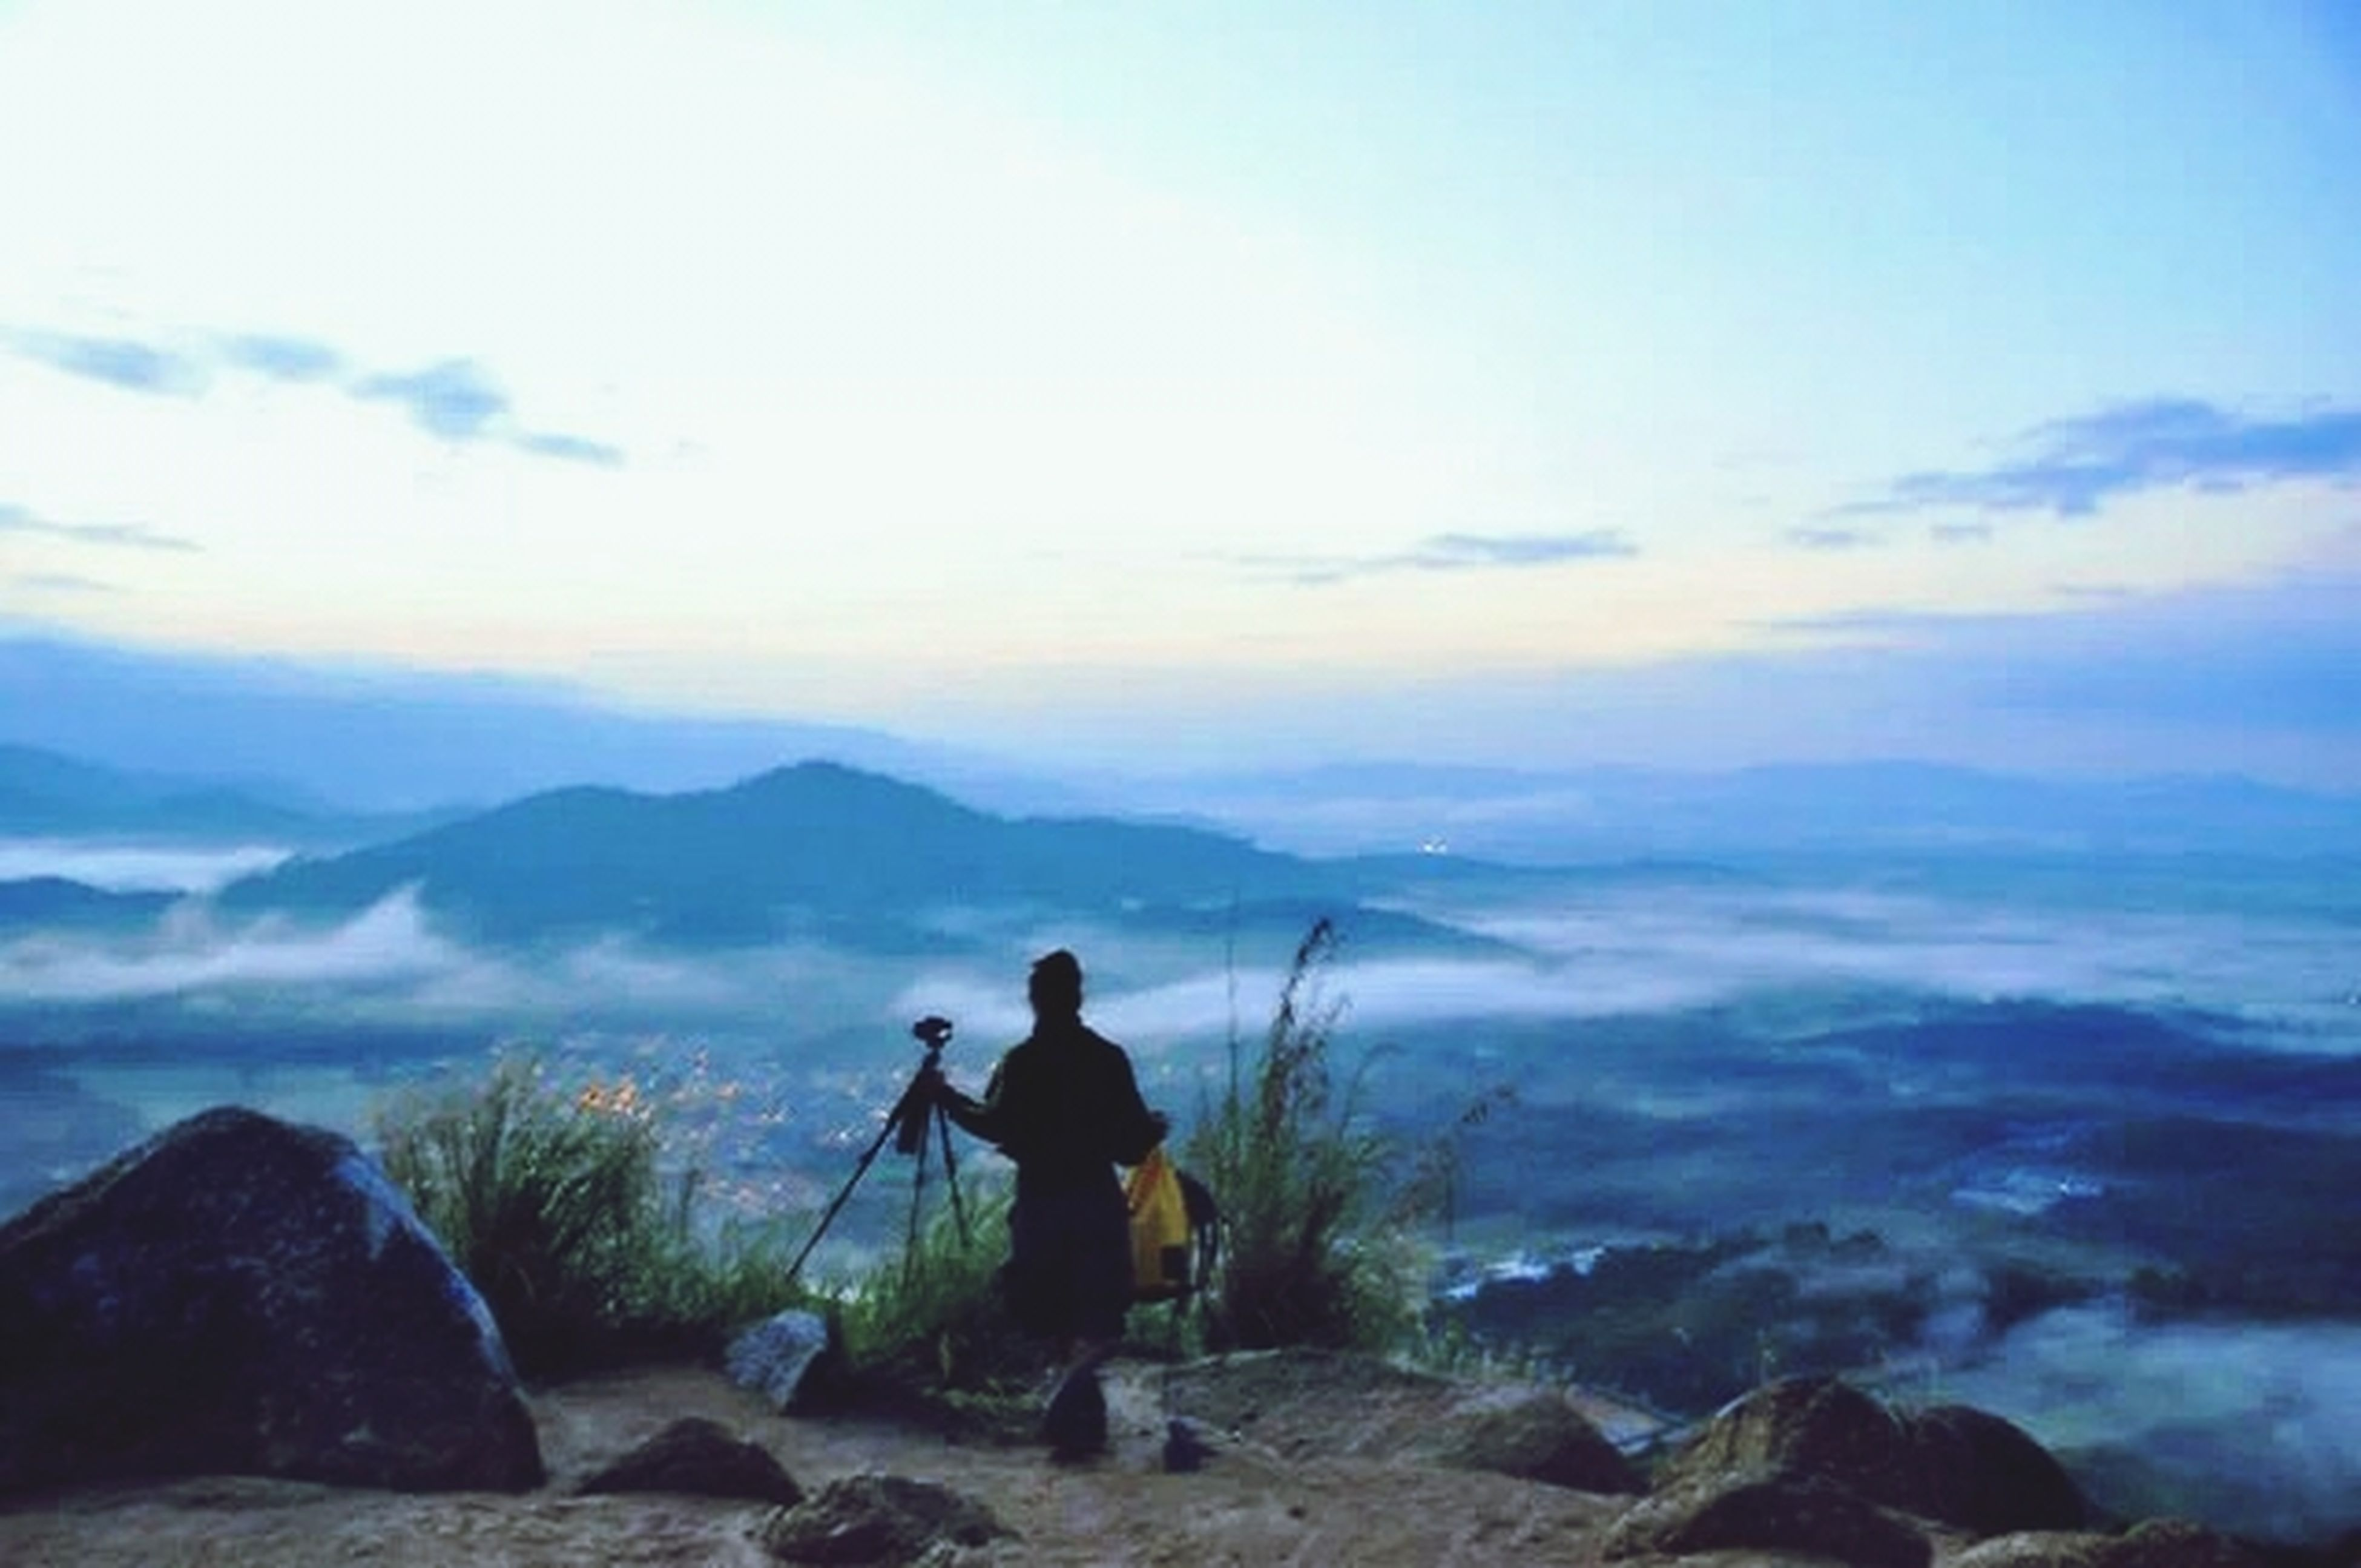 leisure activity, lifestyles, mountain, full length, hiking, men, tranquil scene, rear view, sky, scenics, tranquility, beauty in nature, mountain range, landscape, nature, standing, vacations, backpack